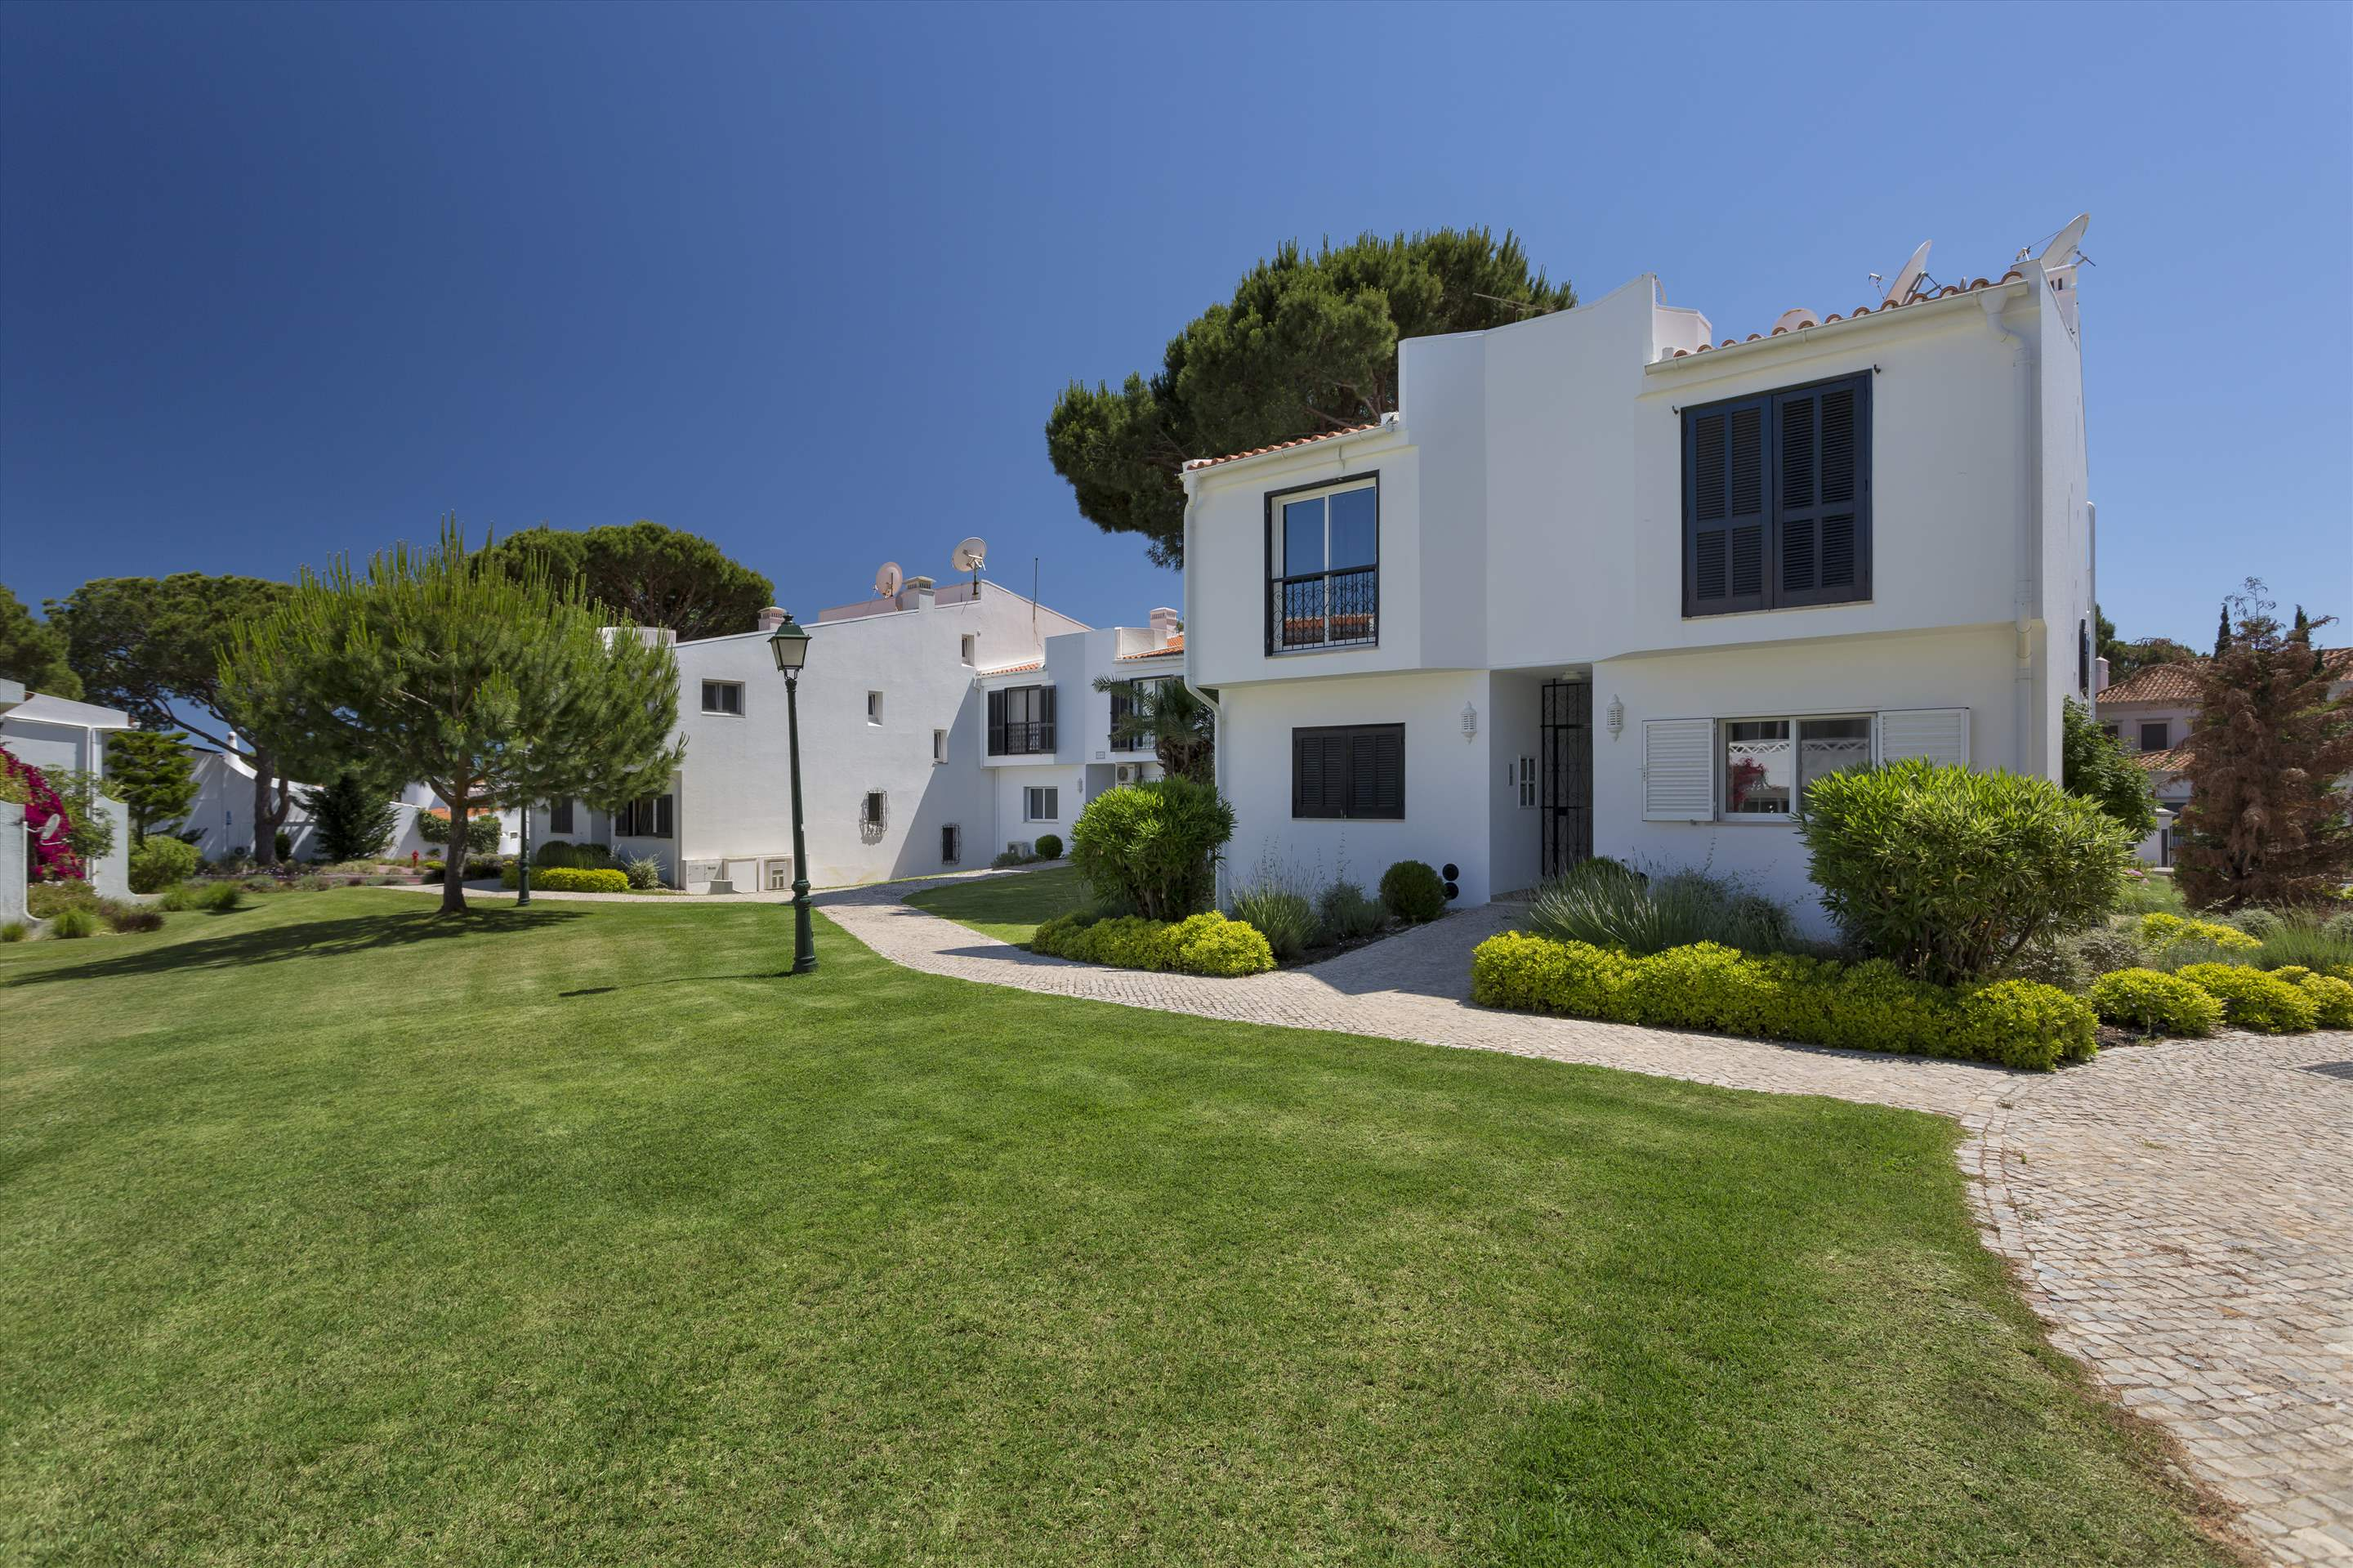 Apartment Bia, 1 bedroom apartment in Vale do Lobo, Algarve Photo #1